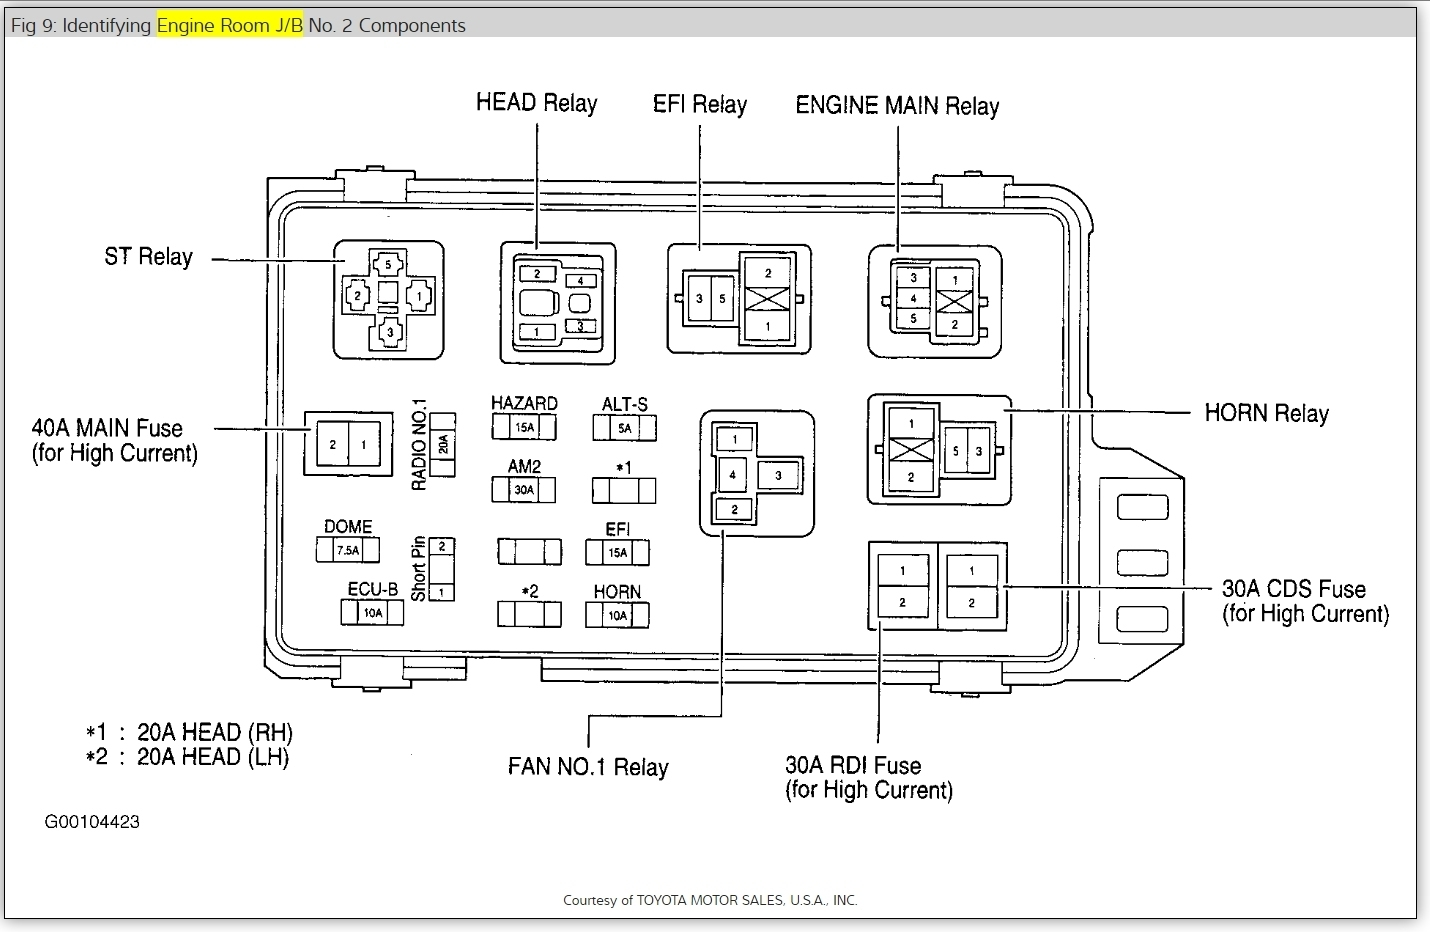 hight resolution of 2001 camry fuse diagram wiring diagram load 2001 camry fuse diagram